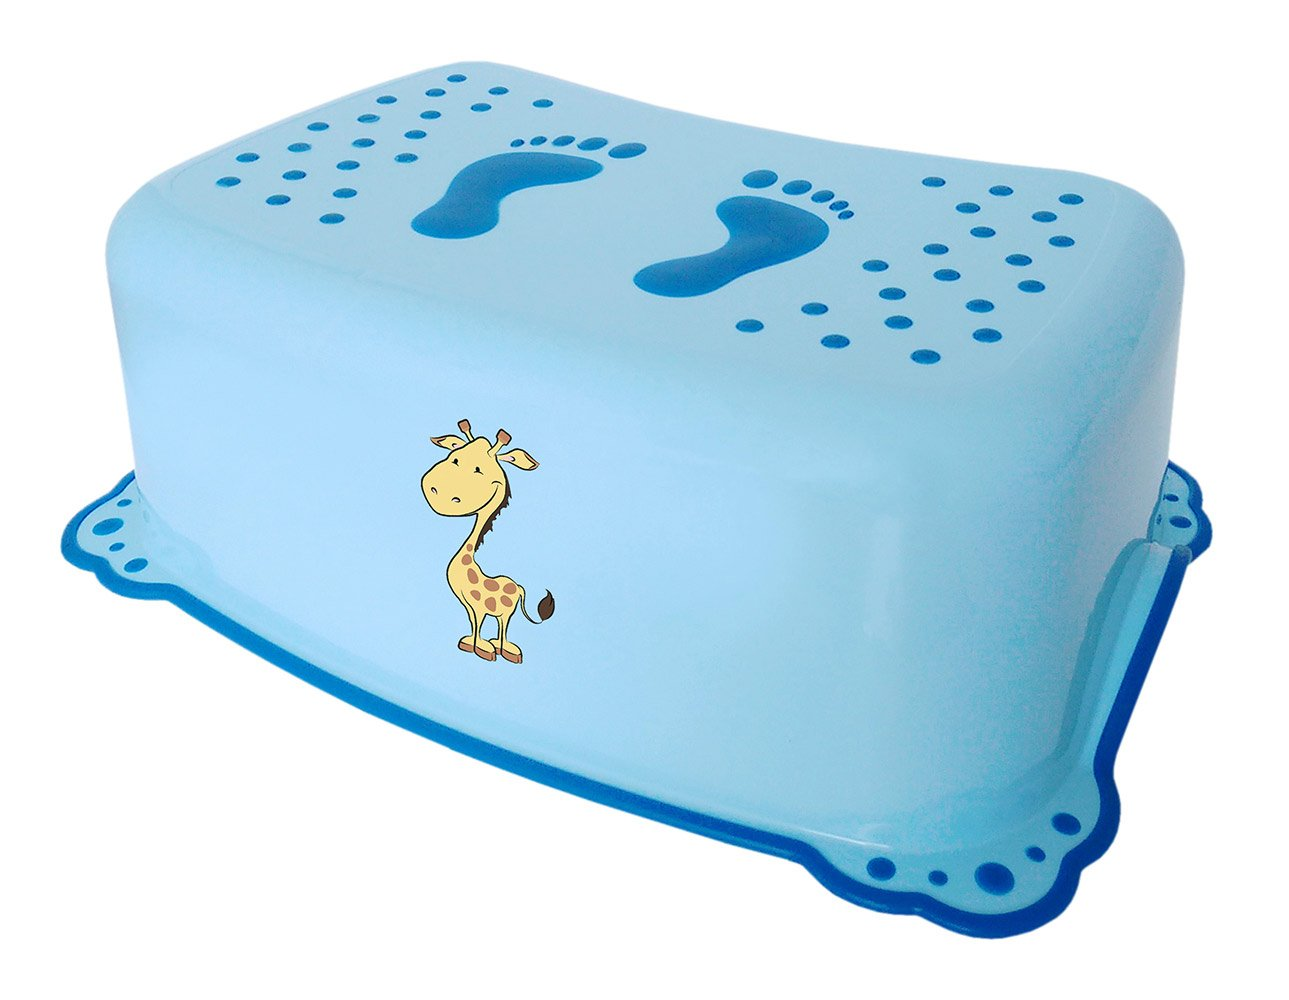 Bisk Anti-Slip Giraffe Childs Step Stool, Blue, 42x14x28cm Yes 06252